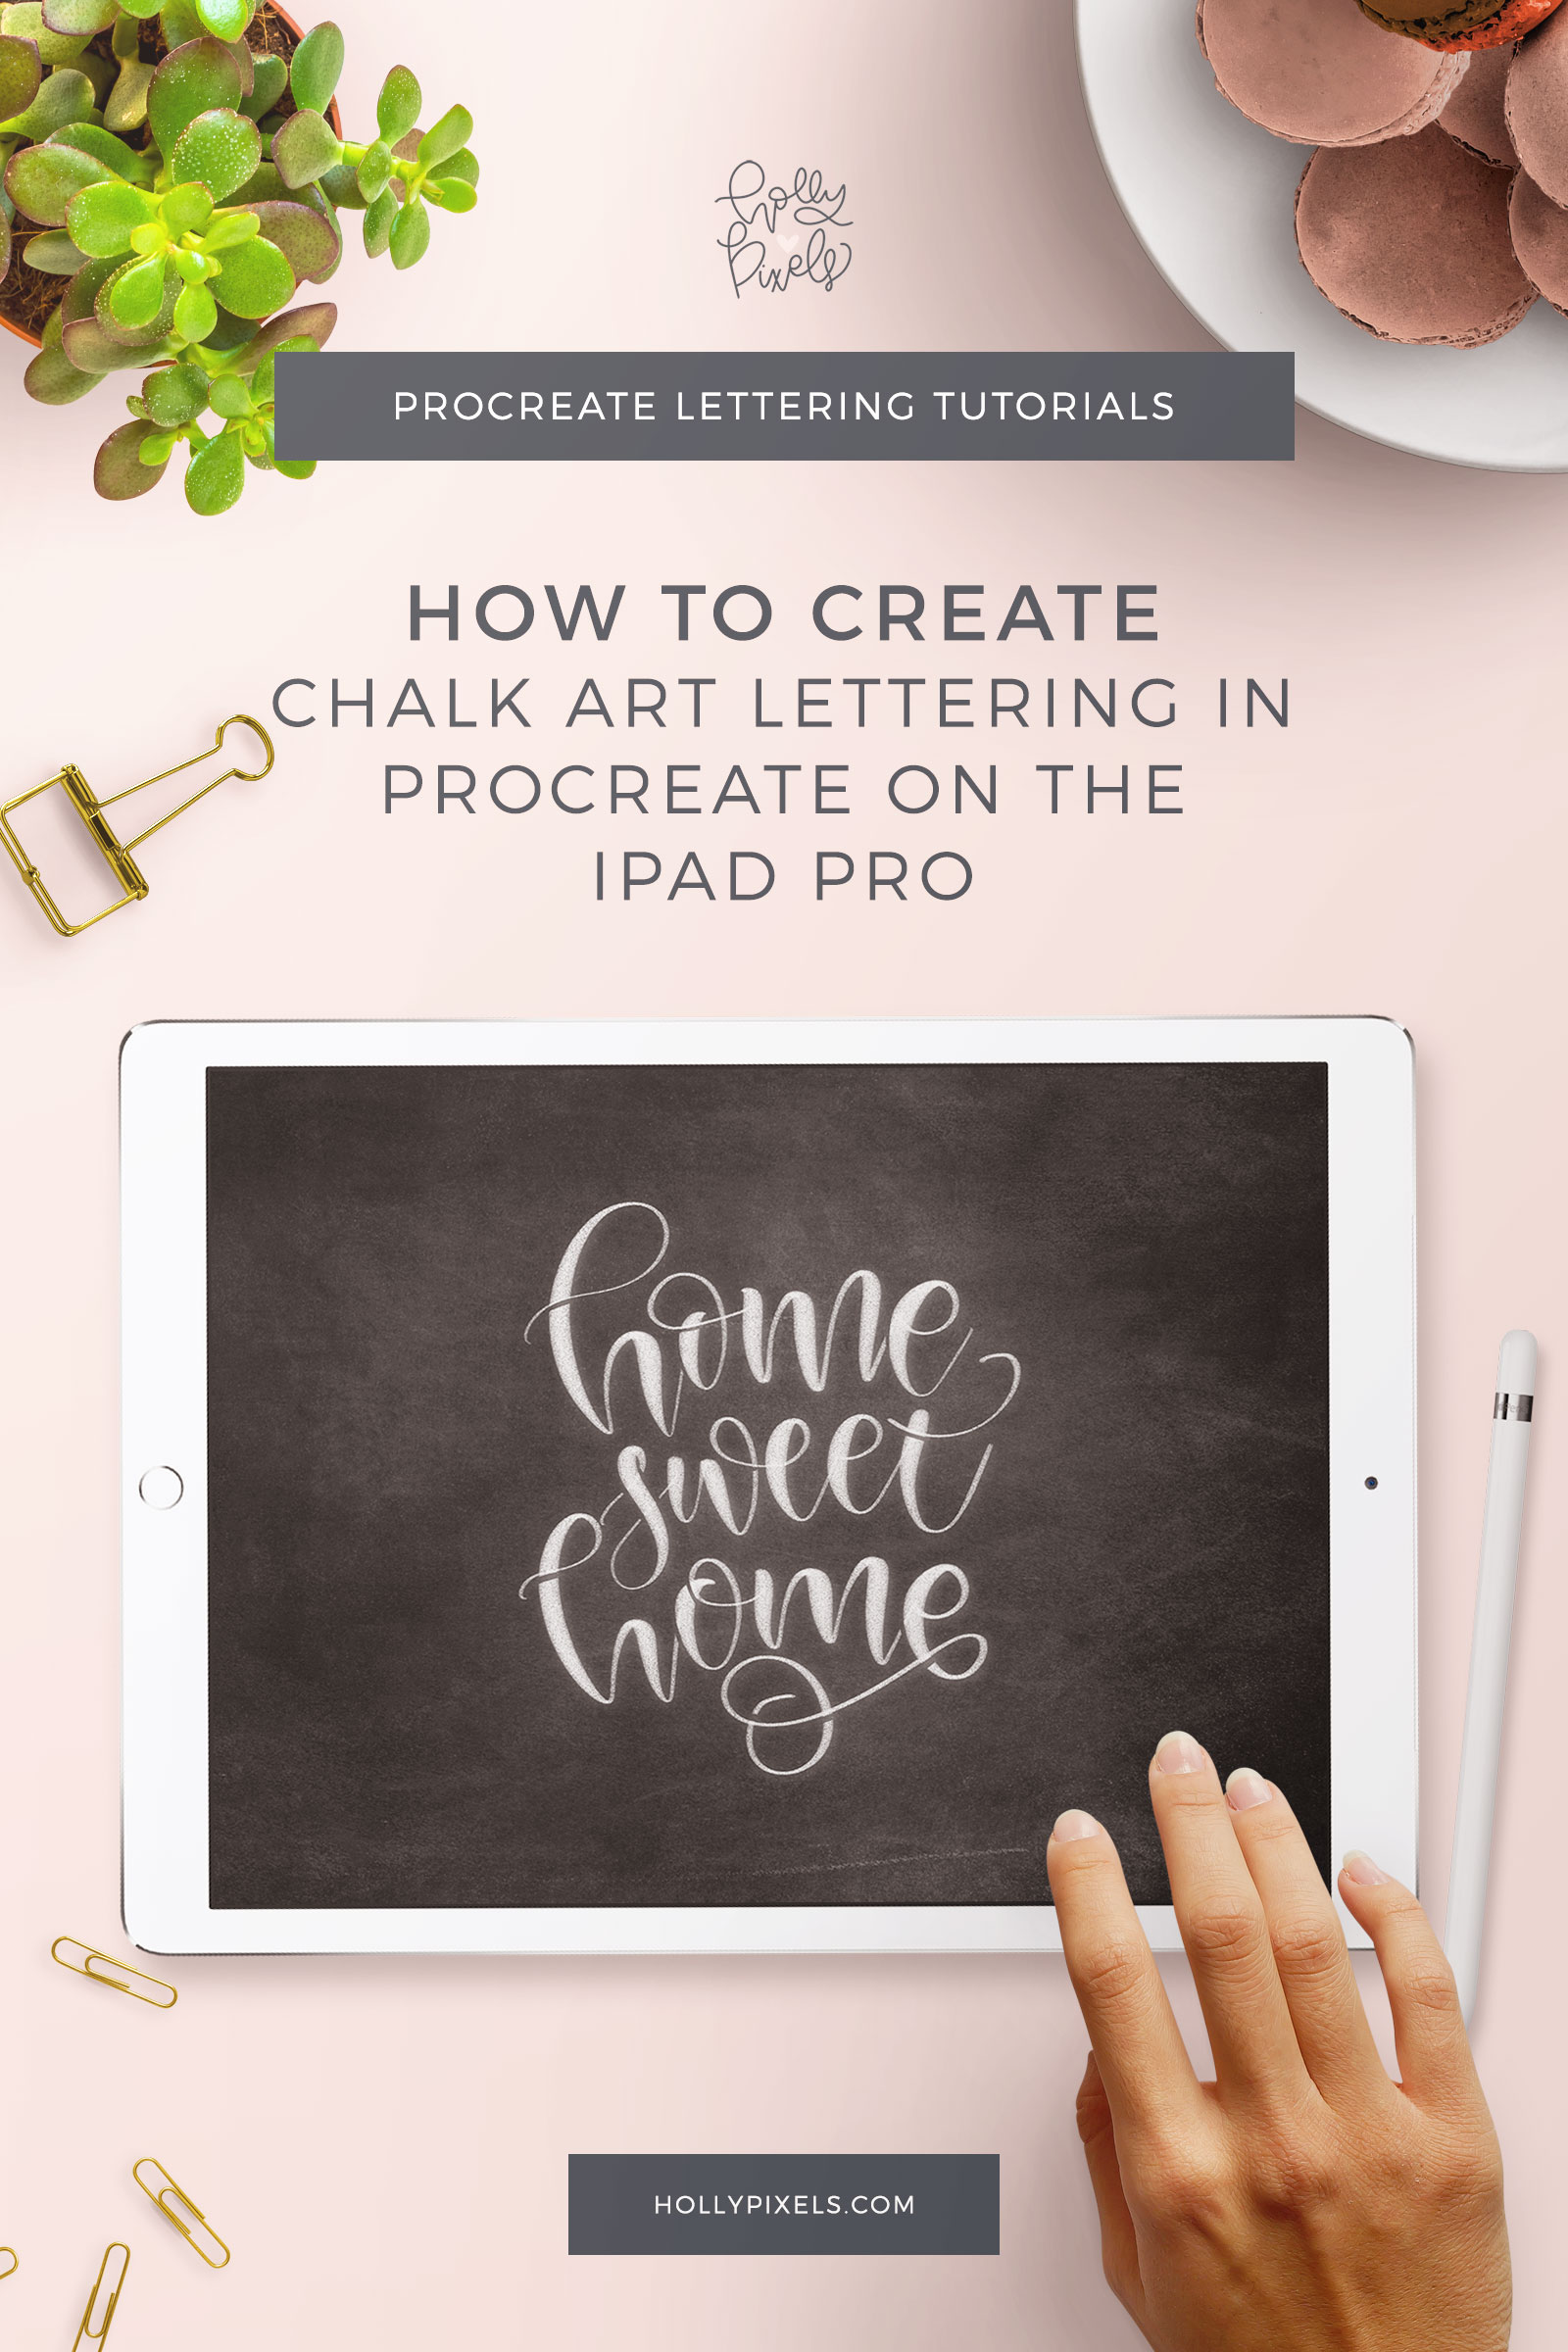 Today I'm going to show you how to make chalk lettering art in Procreate. The Procreate app has unlimited possibilities for your brush lettering artwork. Let's stretch those possibilities and create some digital chalk art like you would in other popular programs like Photoshop.